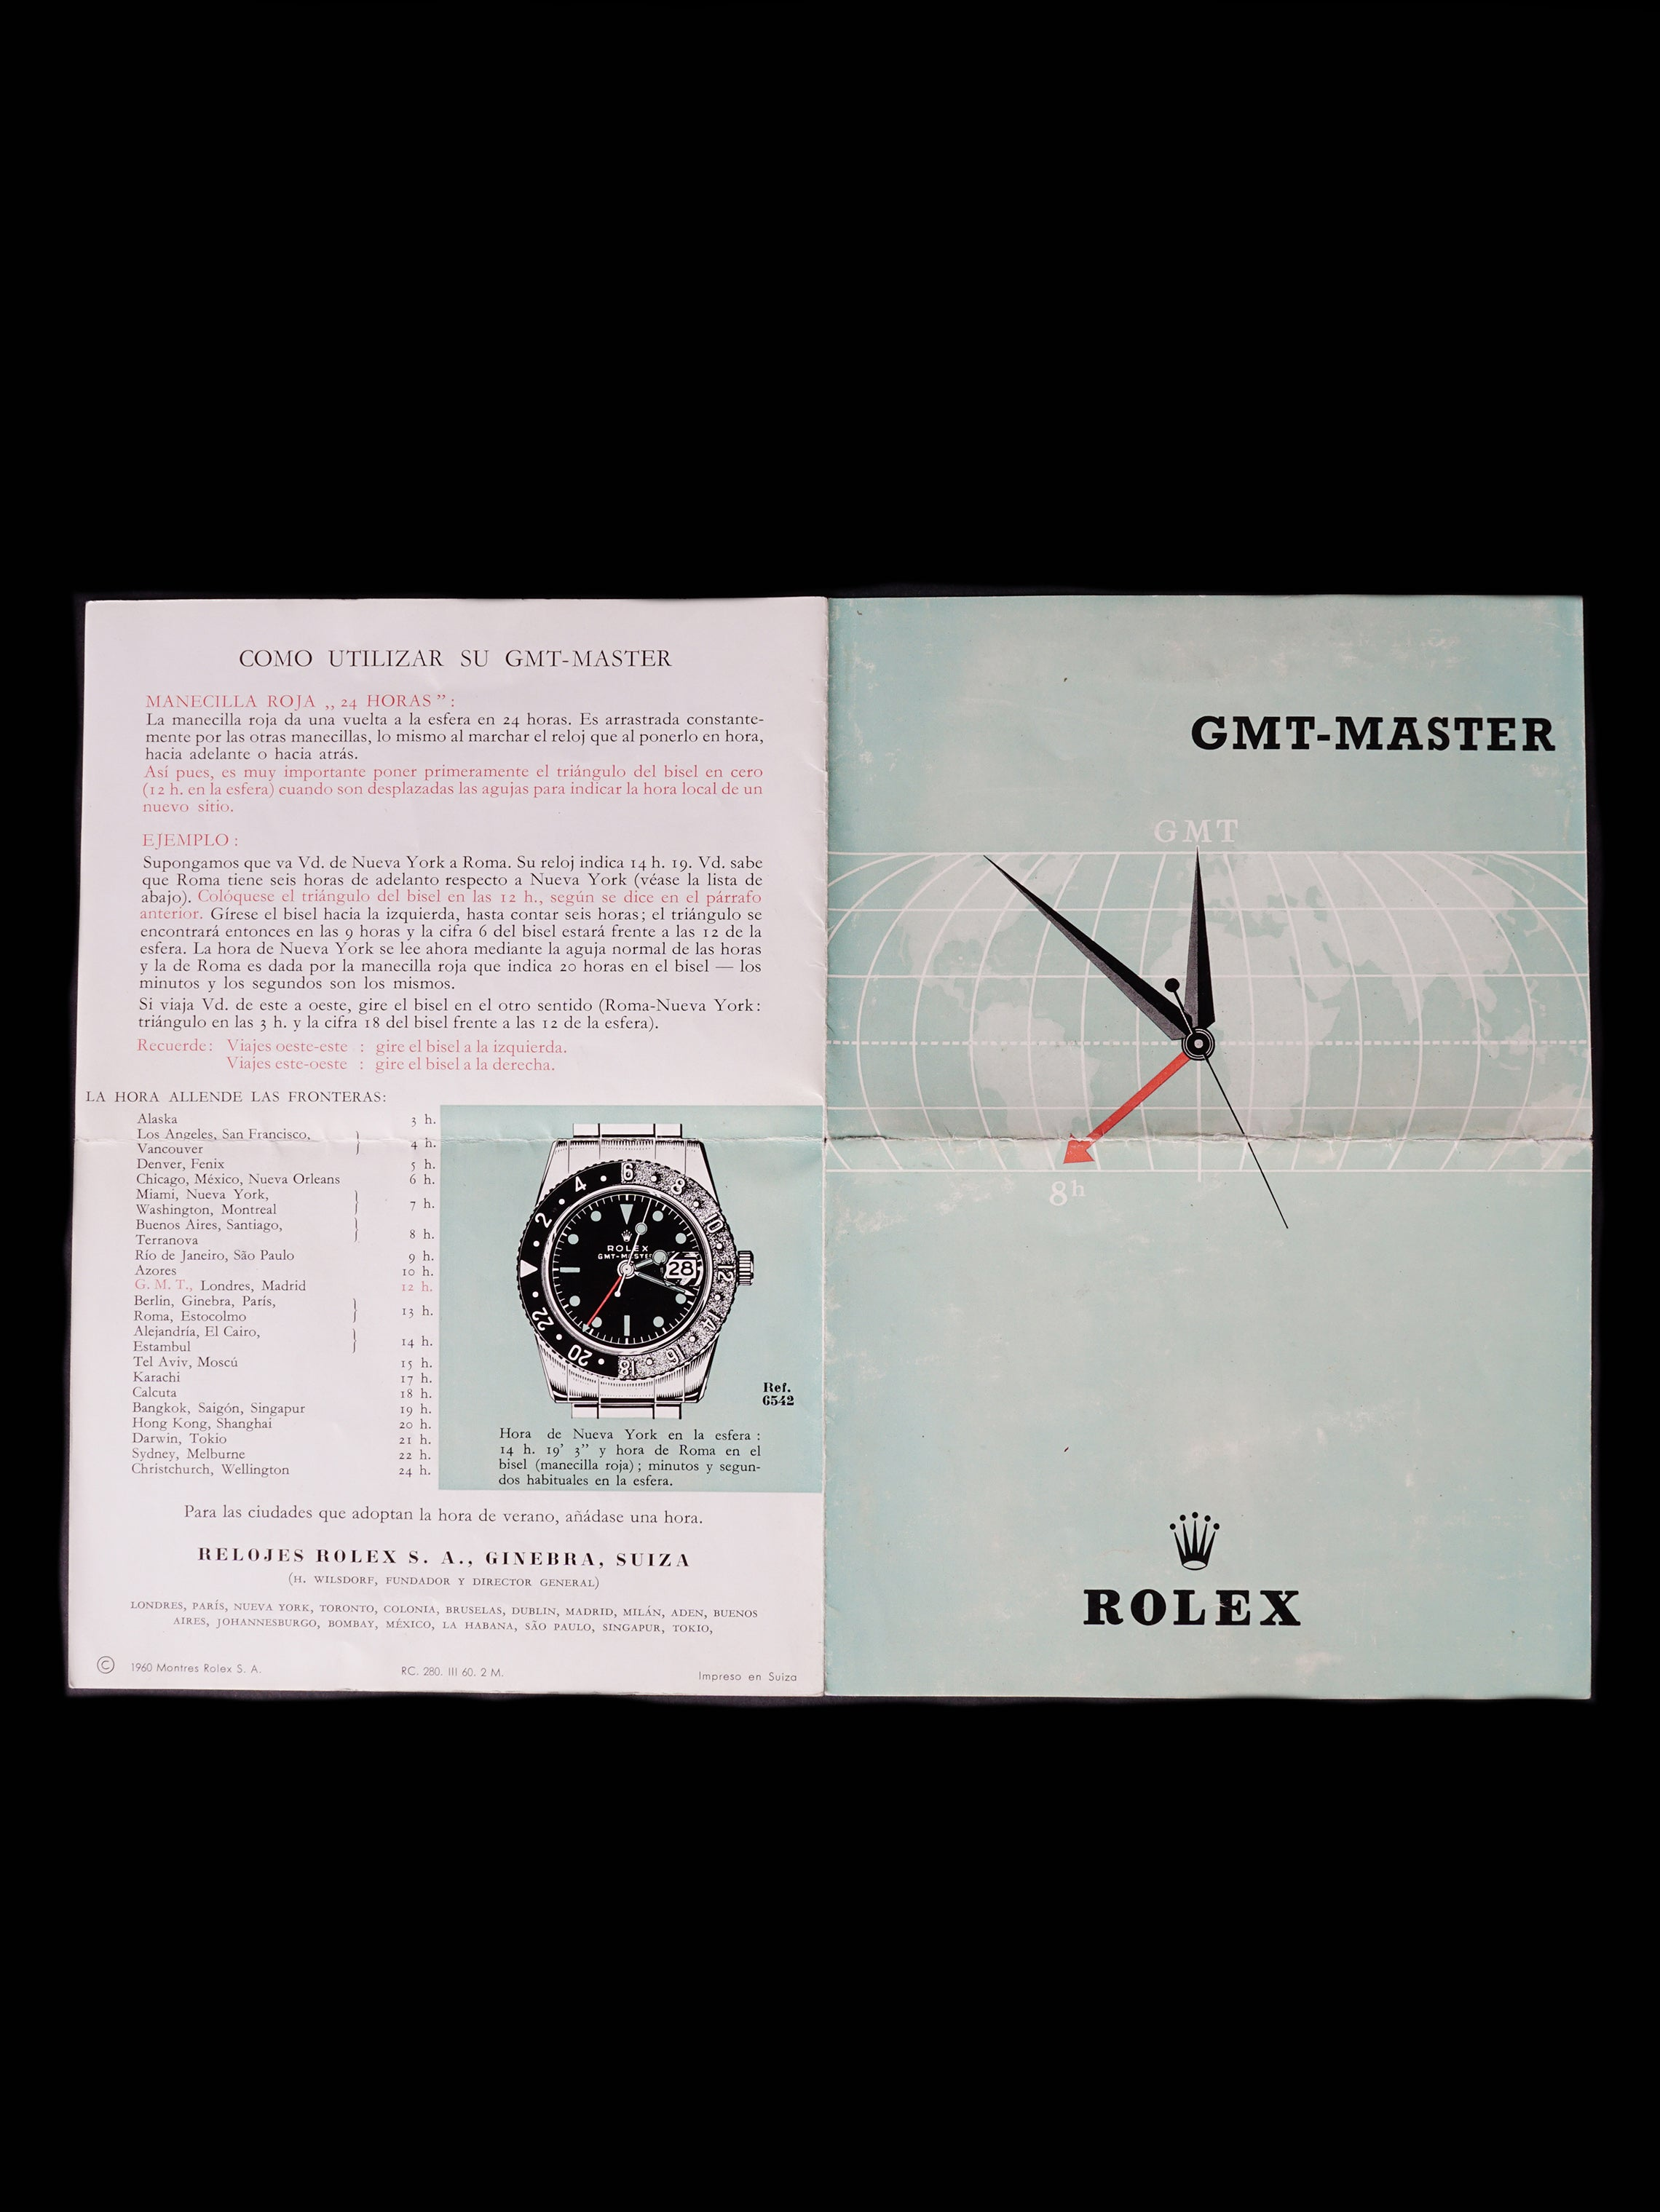 1961 Rolex GMT-Master (Ref. 1675) PCG, Gilt Chapter Ring, Exclamation W/ Papers